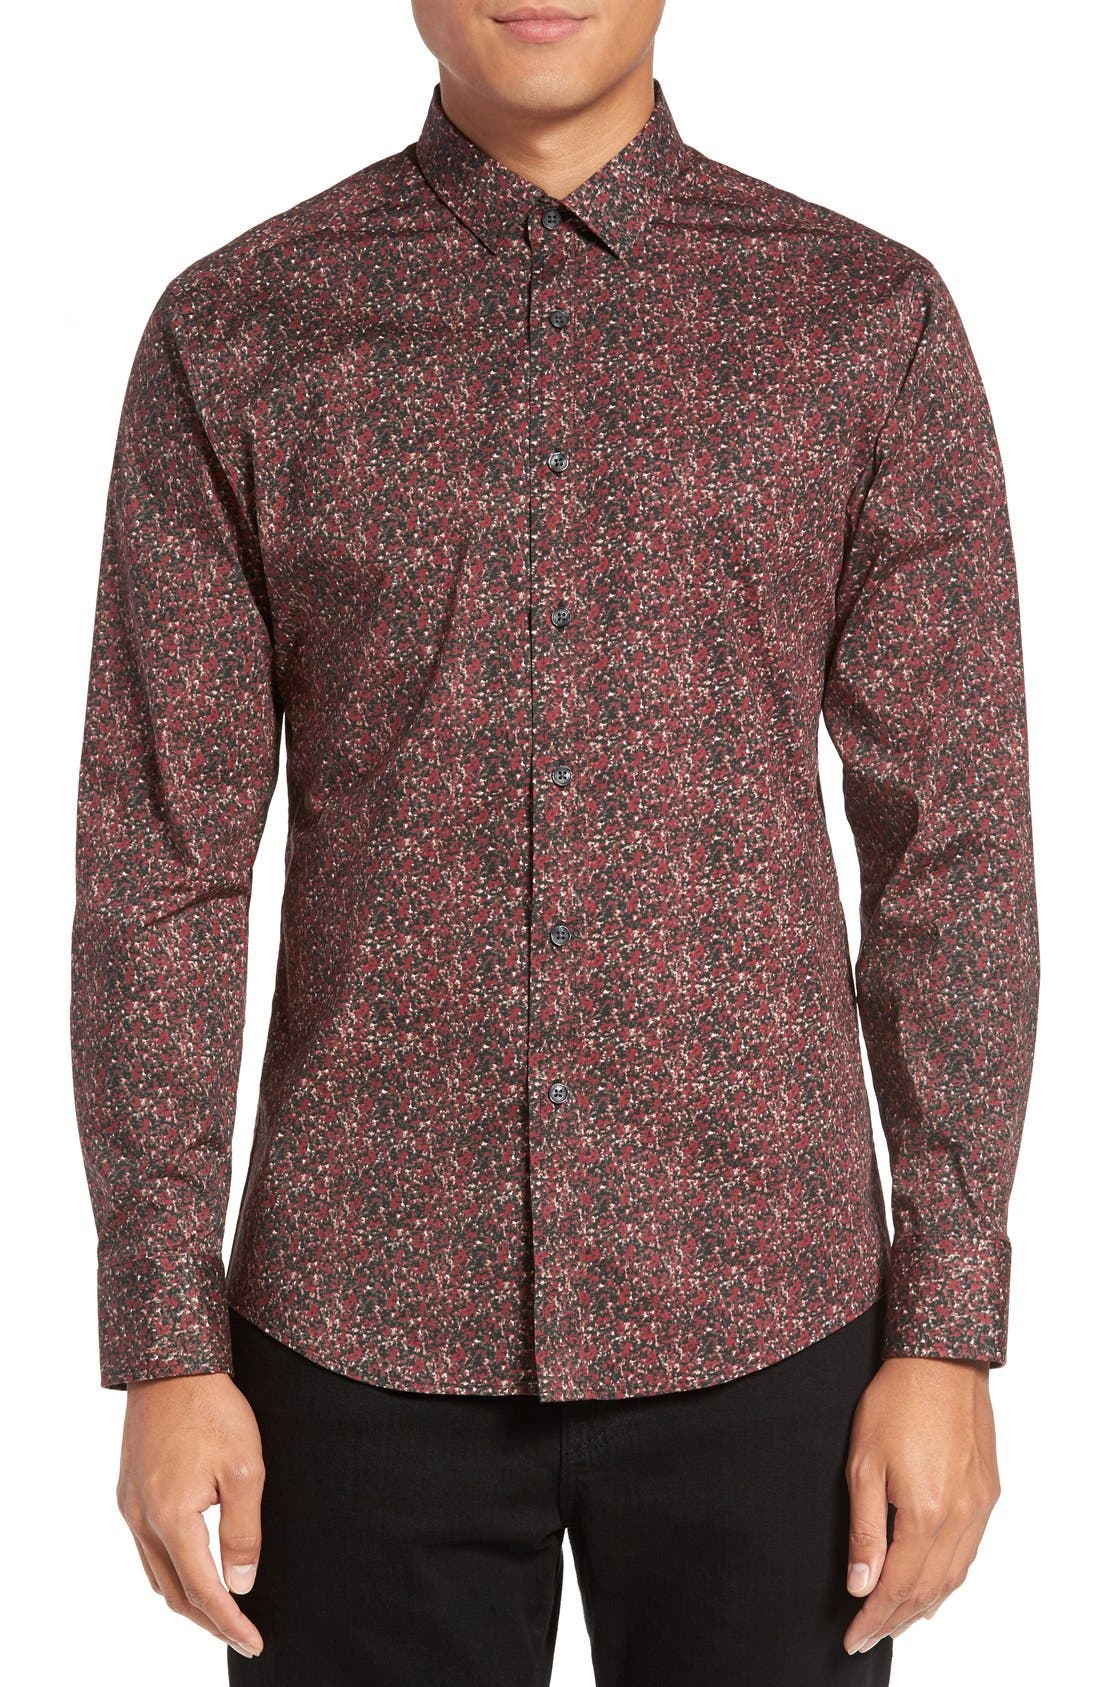 Alternate Image 1 Selected - Vince Camuto Slim Fit Print Sport Shirt